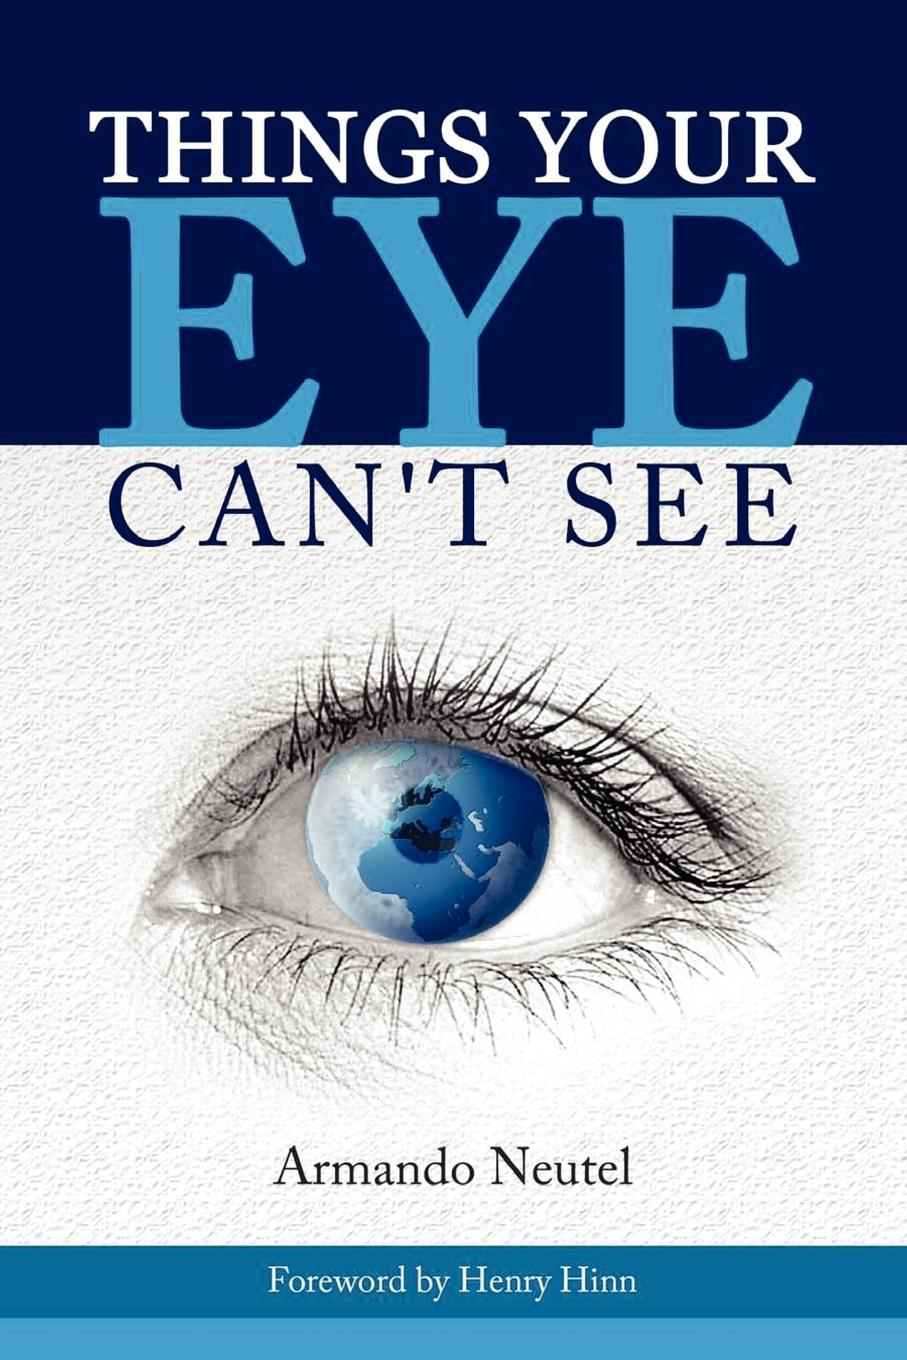 Armando Neutel THINGS YOUR EYE CAN.T SEE joel george rise above your enemies paperback book